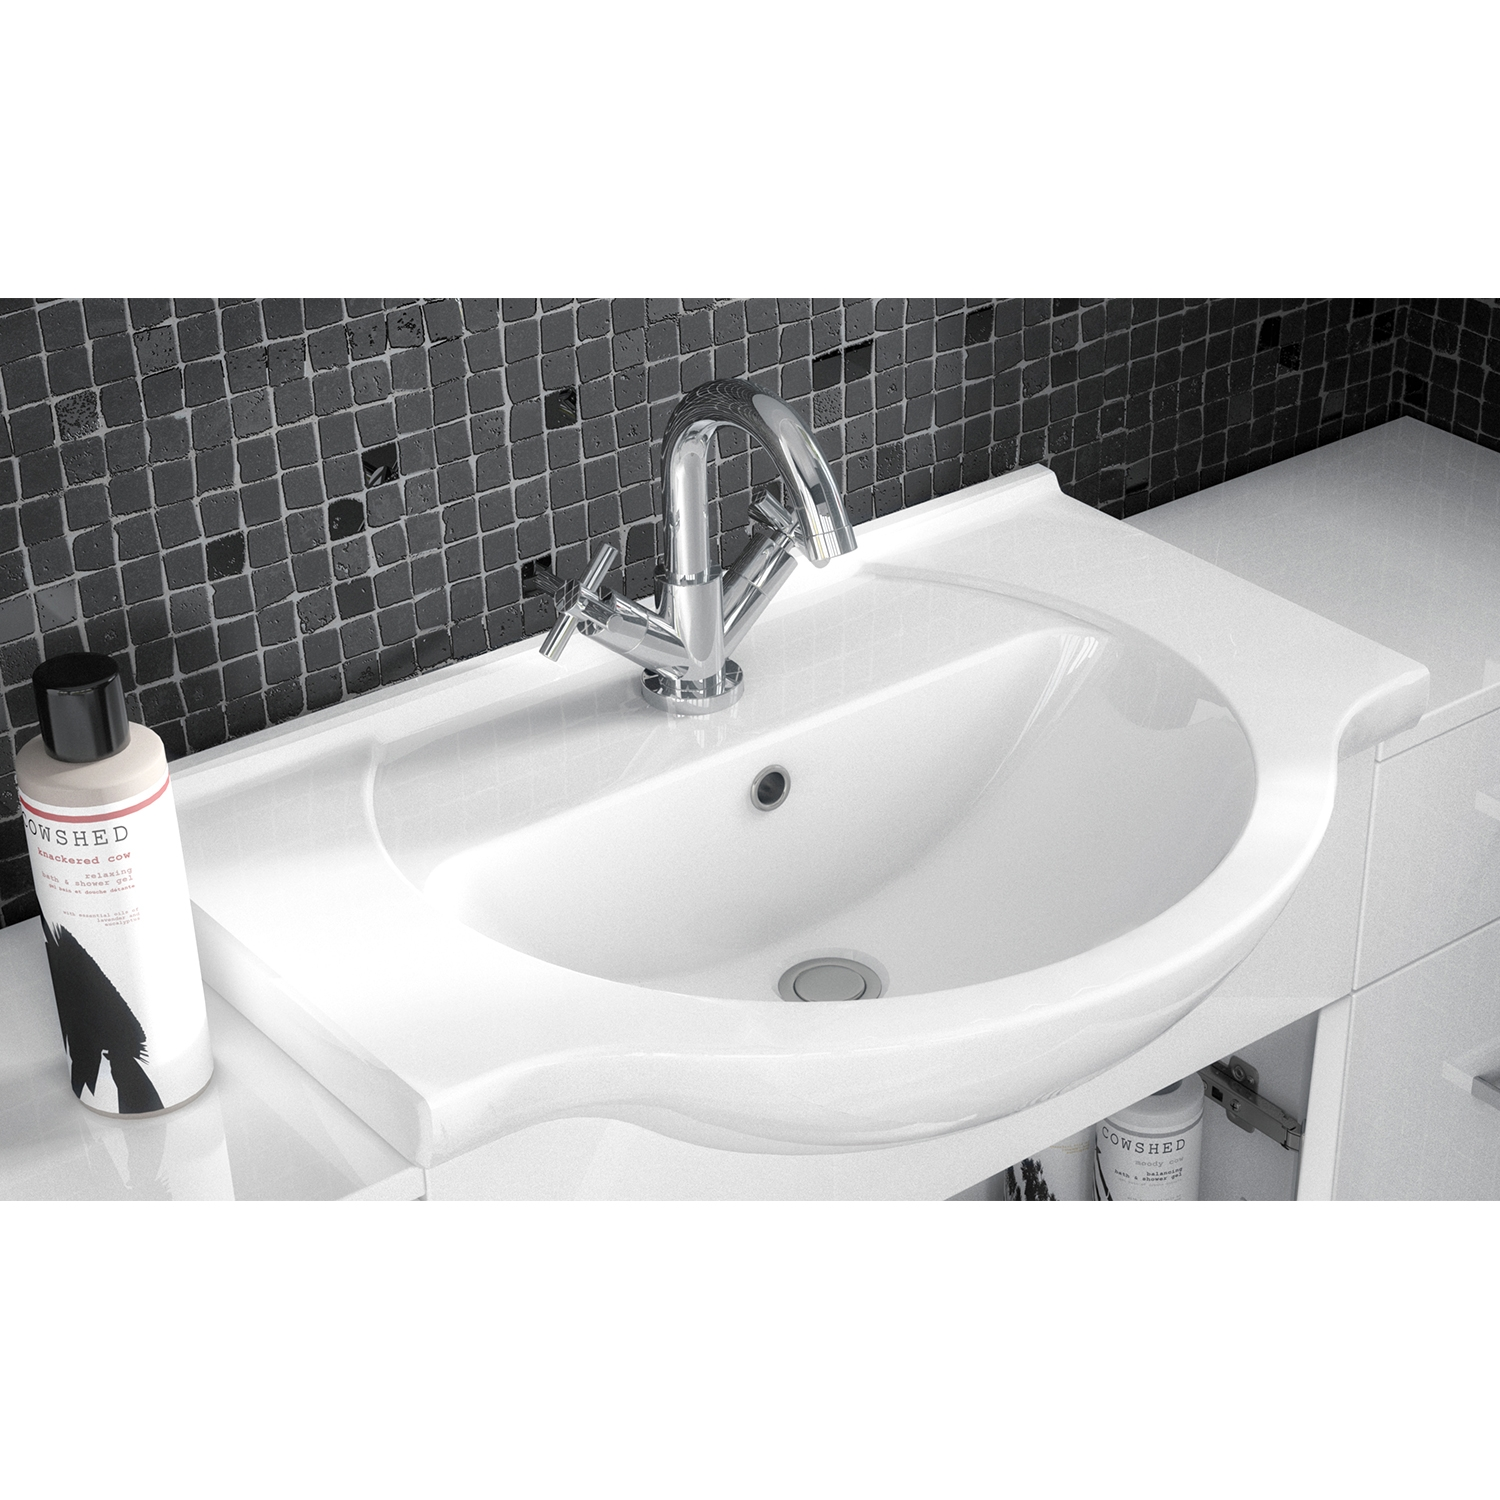 Premier Mayford Bathroom Vanity Unit with Basin 550mm Wide - 1 Tap Hole-1